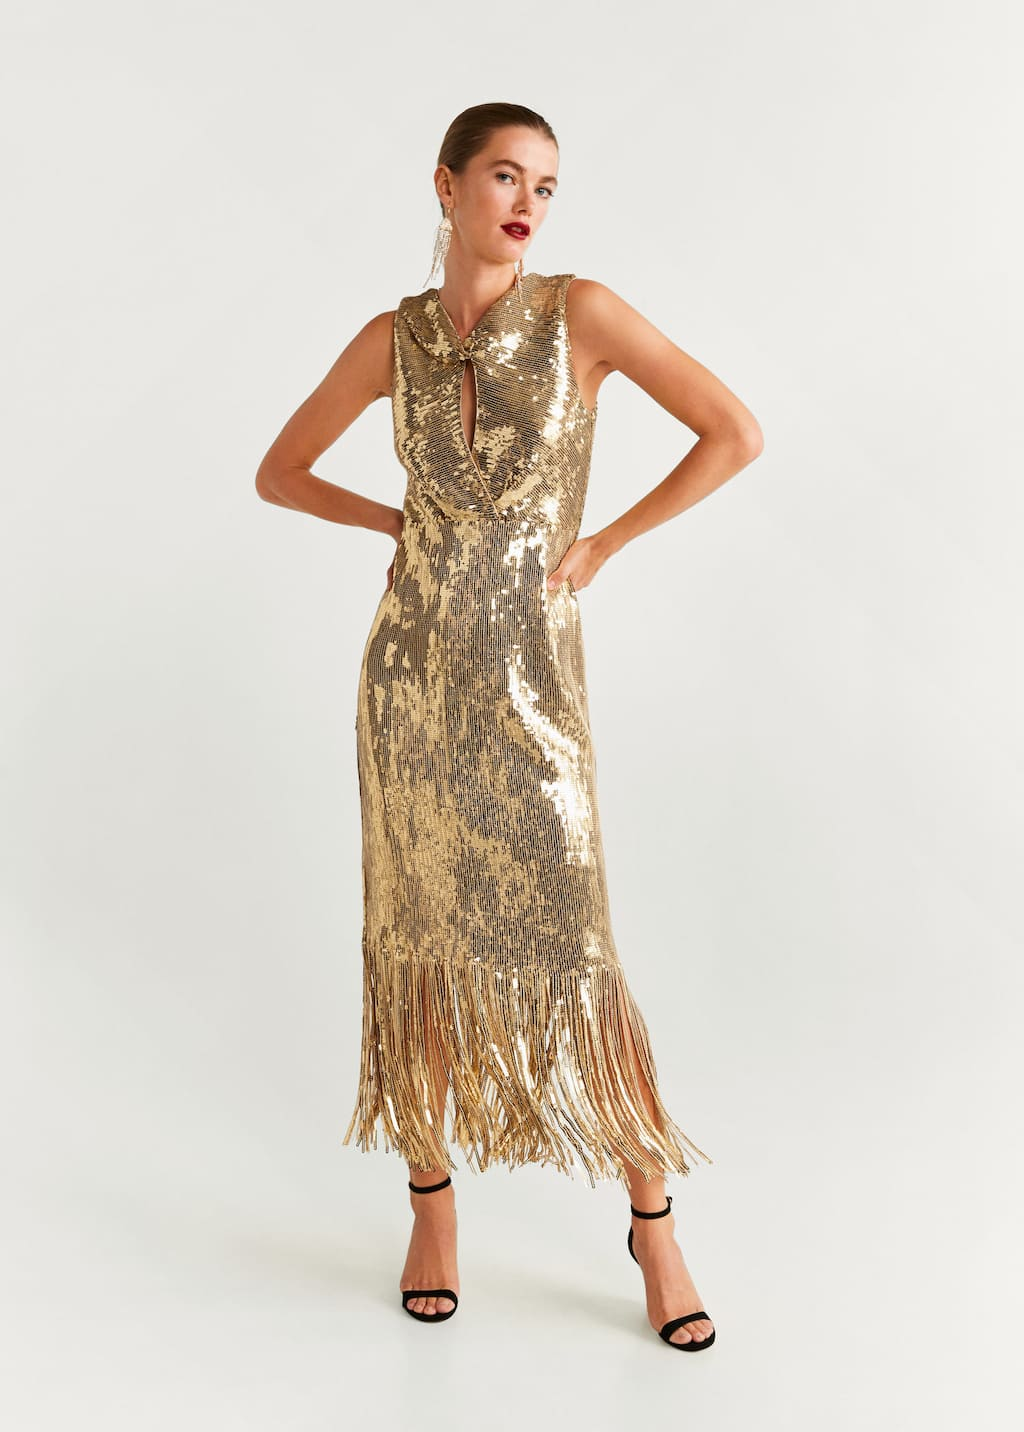 Sequins fringed dress - General plane